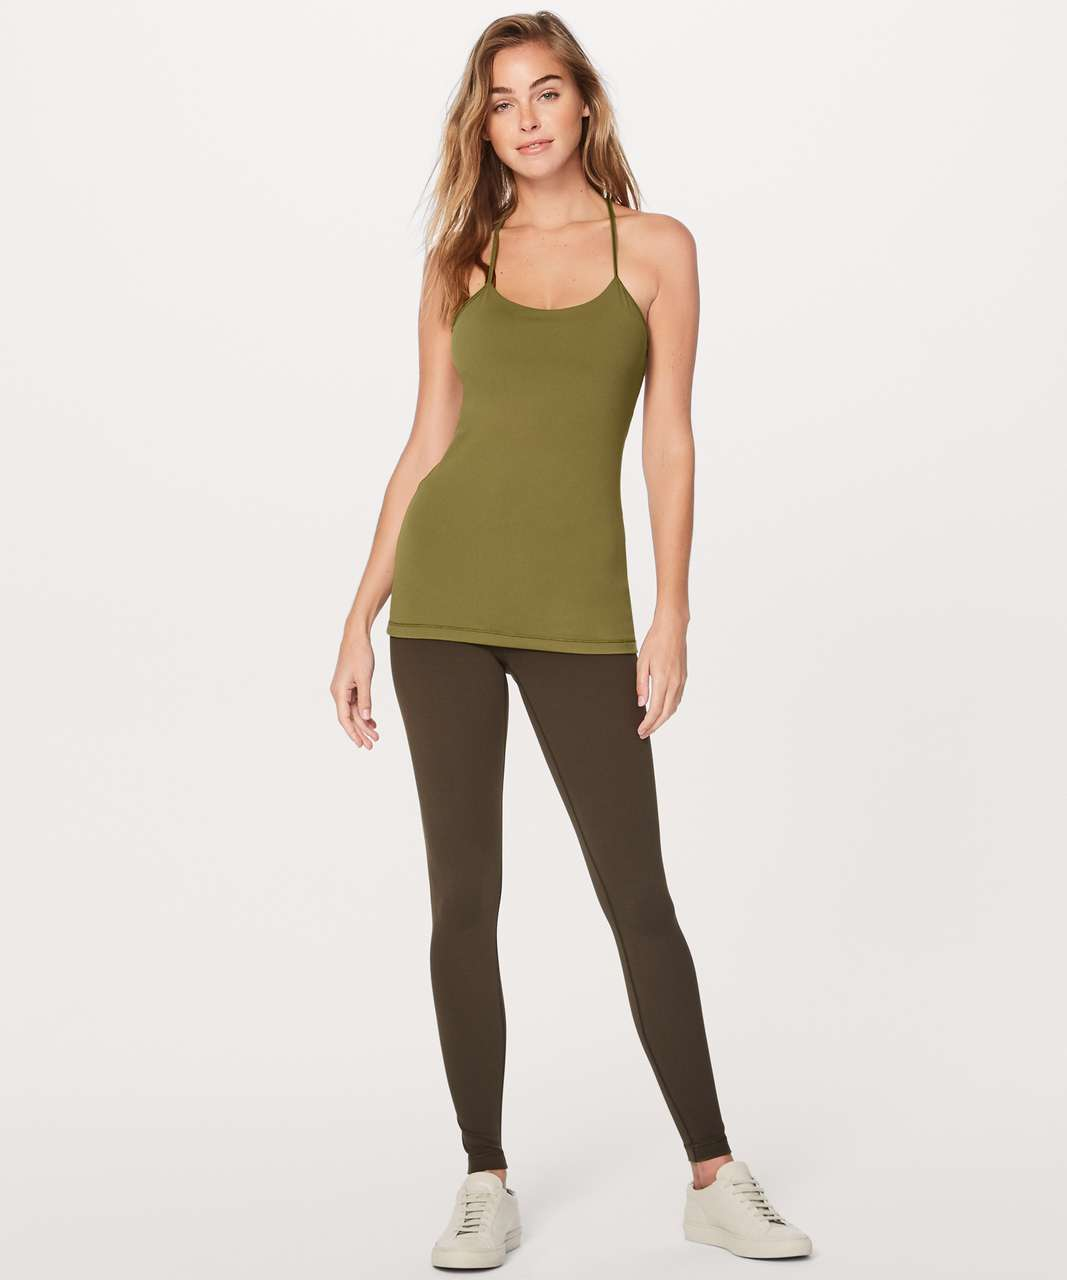 Lululemon Power Pose Tank *Light Support For A/B Cup - Meadow